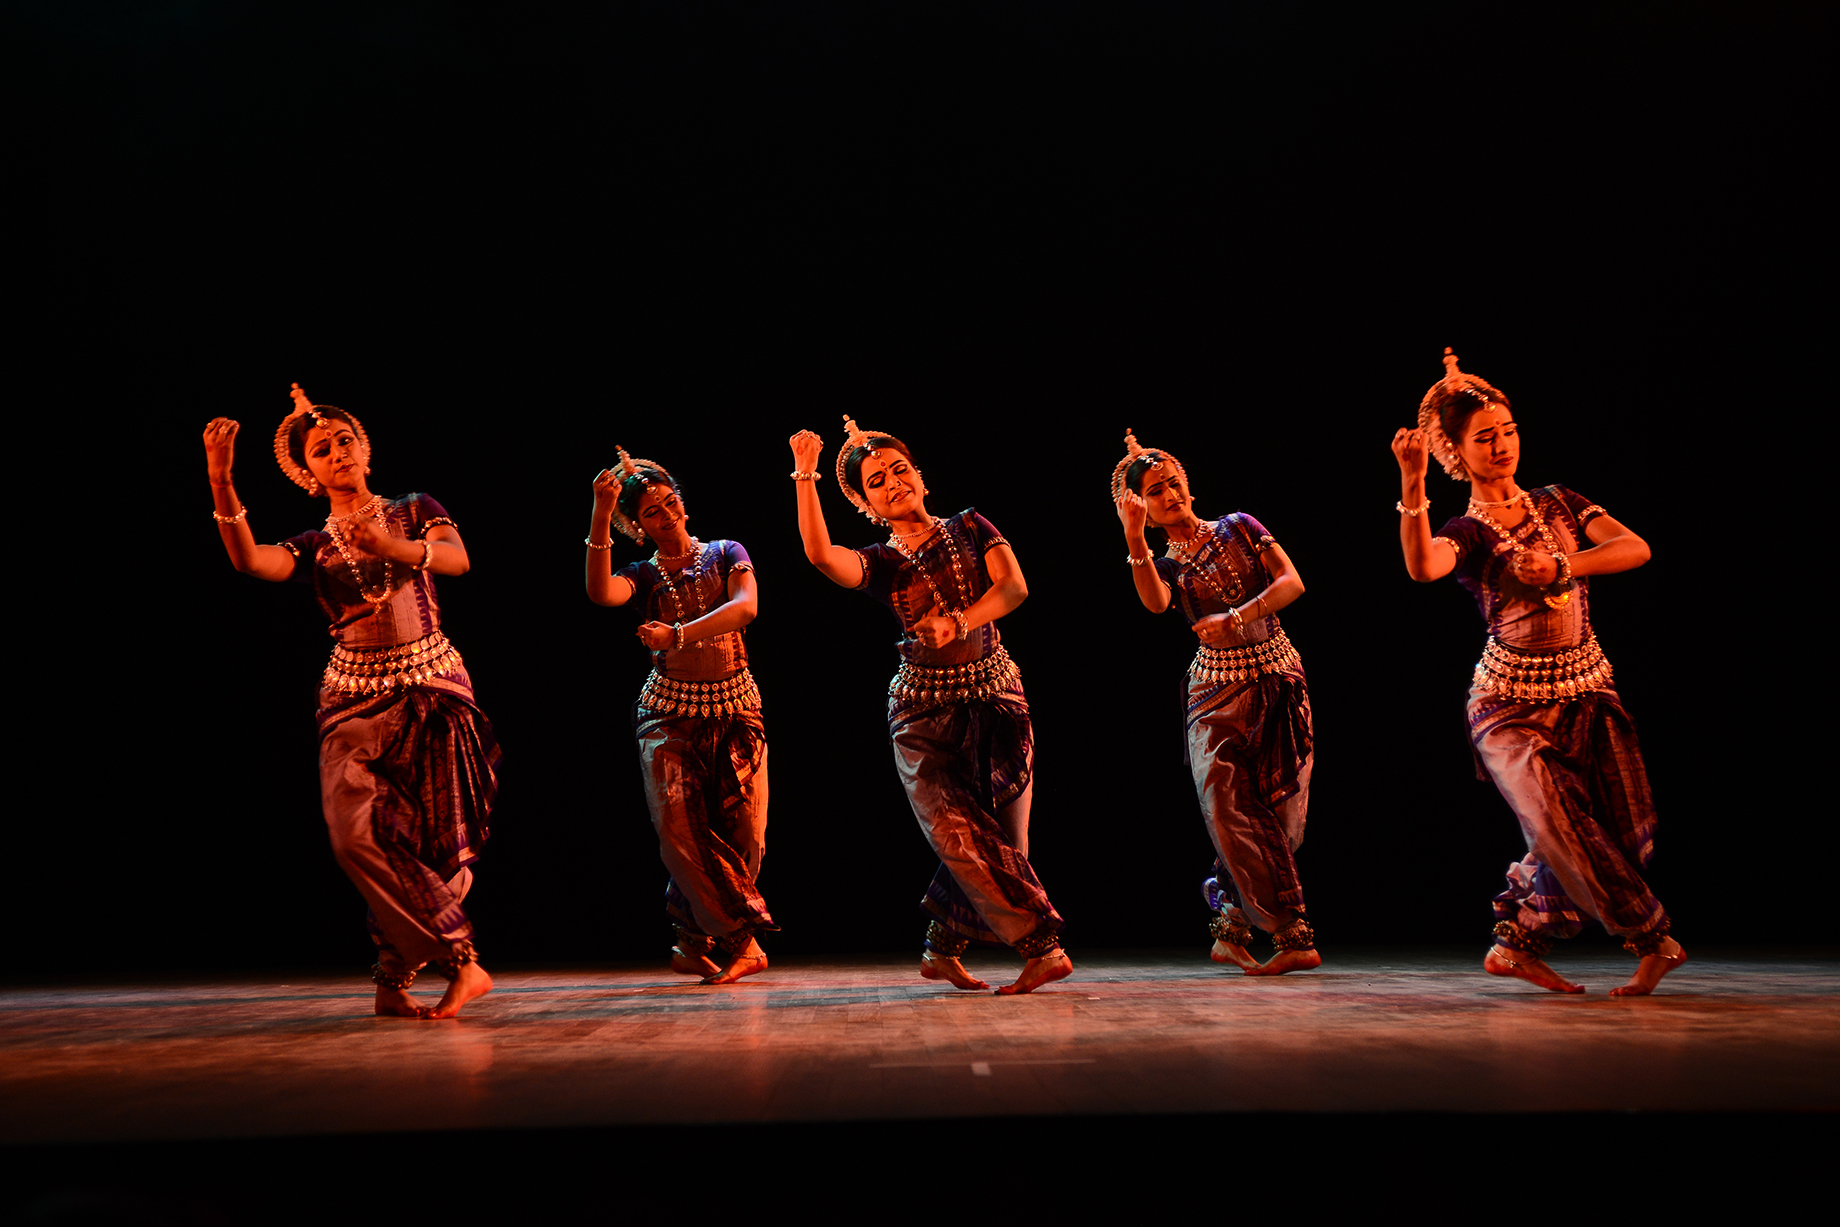 His work abroad has given him new insights into imparting the subtlety of the highly nuanced Odissi dance tradition to students and audiences the world over.